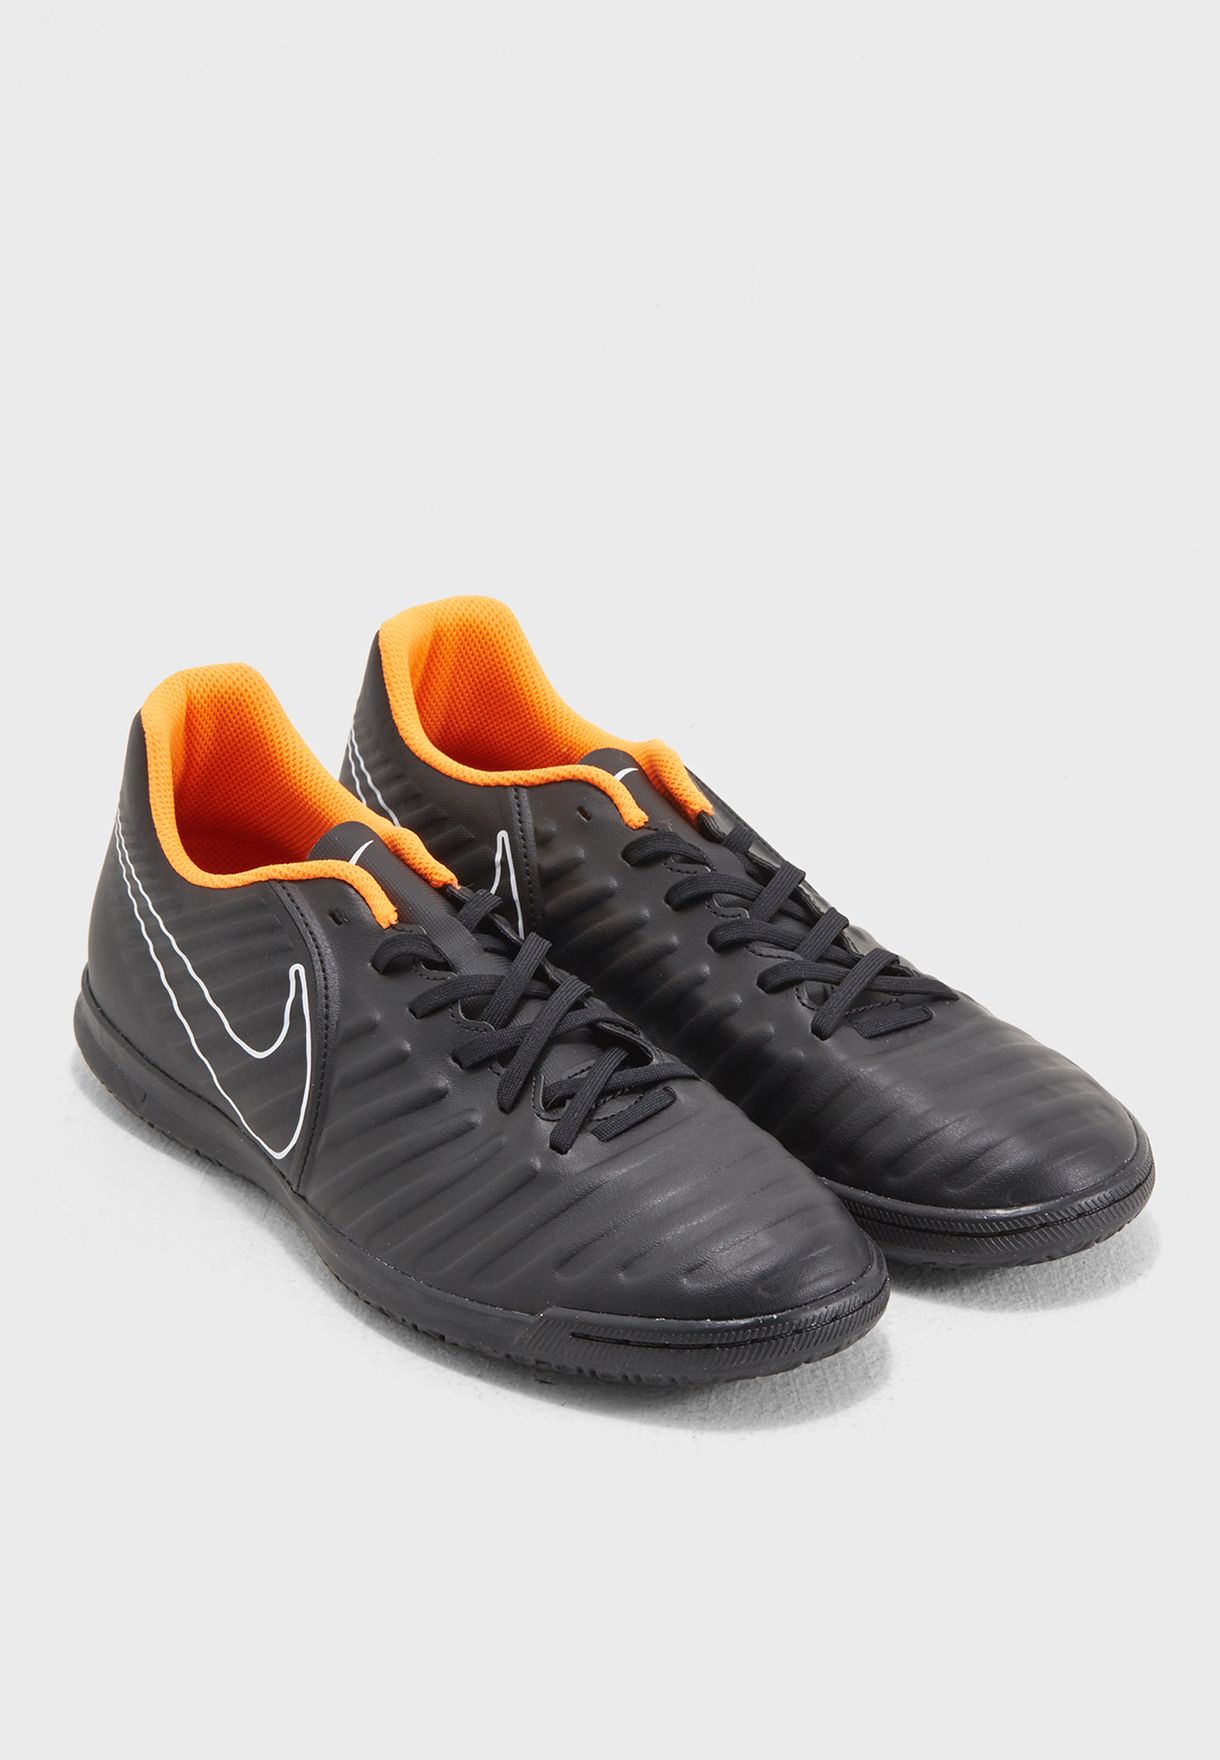 4212a476383 Shop Nike black Tiempo Legendx 7 Club IC AH7245-080 for Men in ...